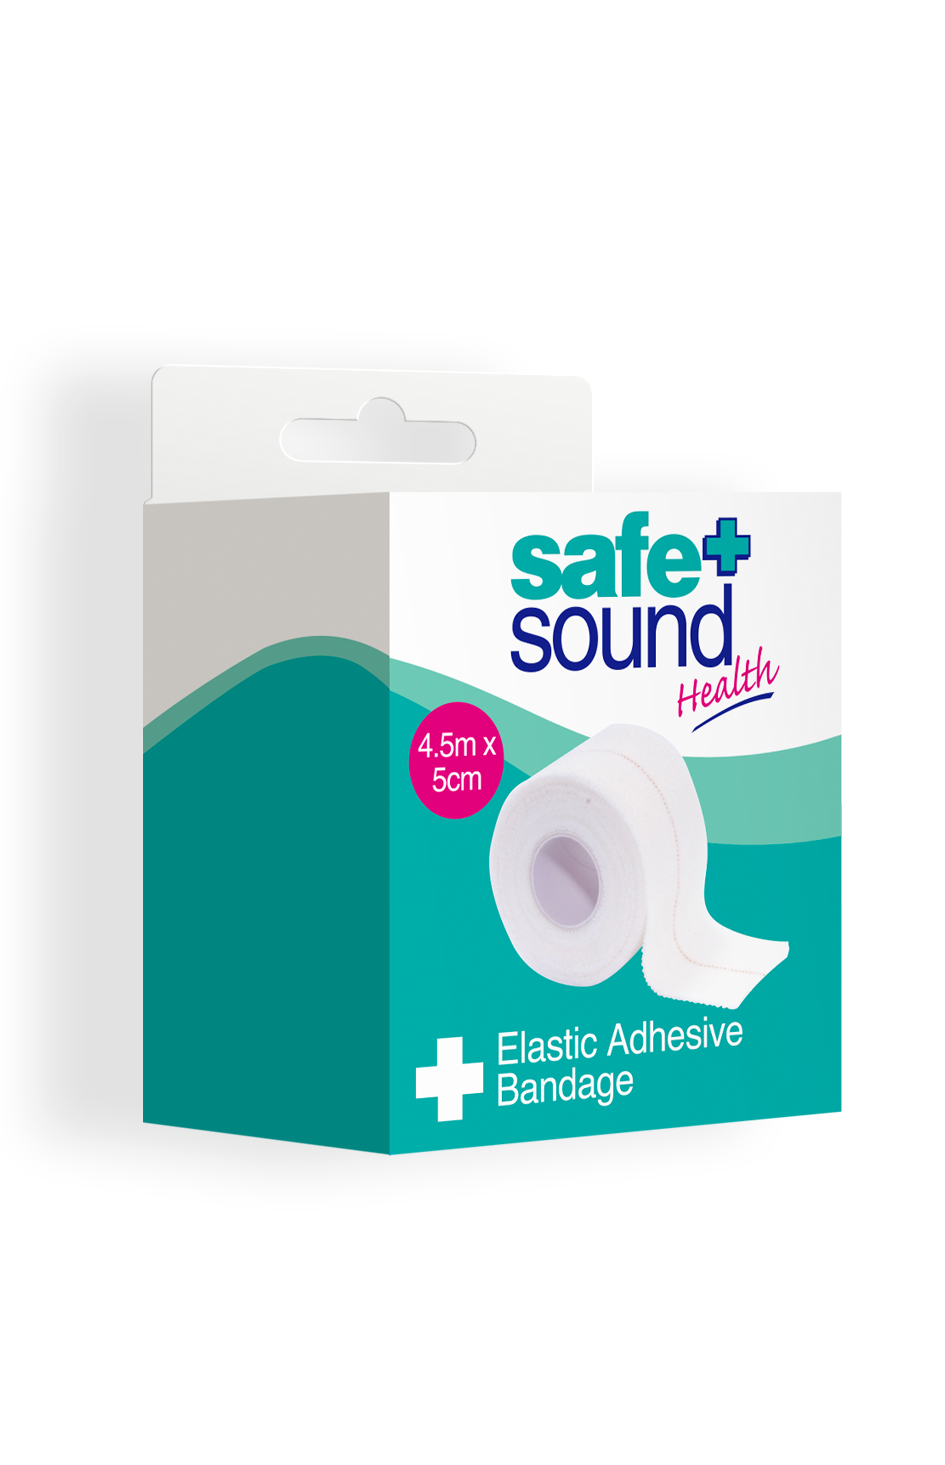 Safe and Sound Health's Elastic Adhesive Bandage (EAB Tape)